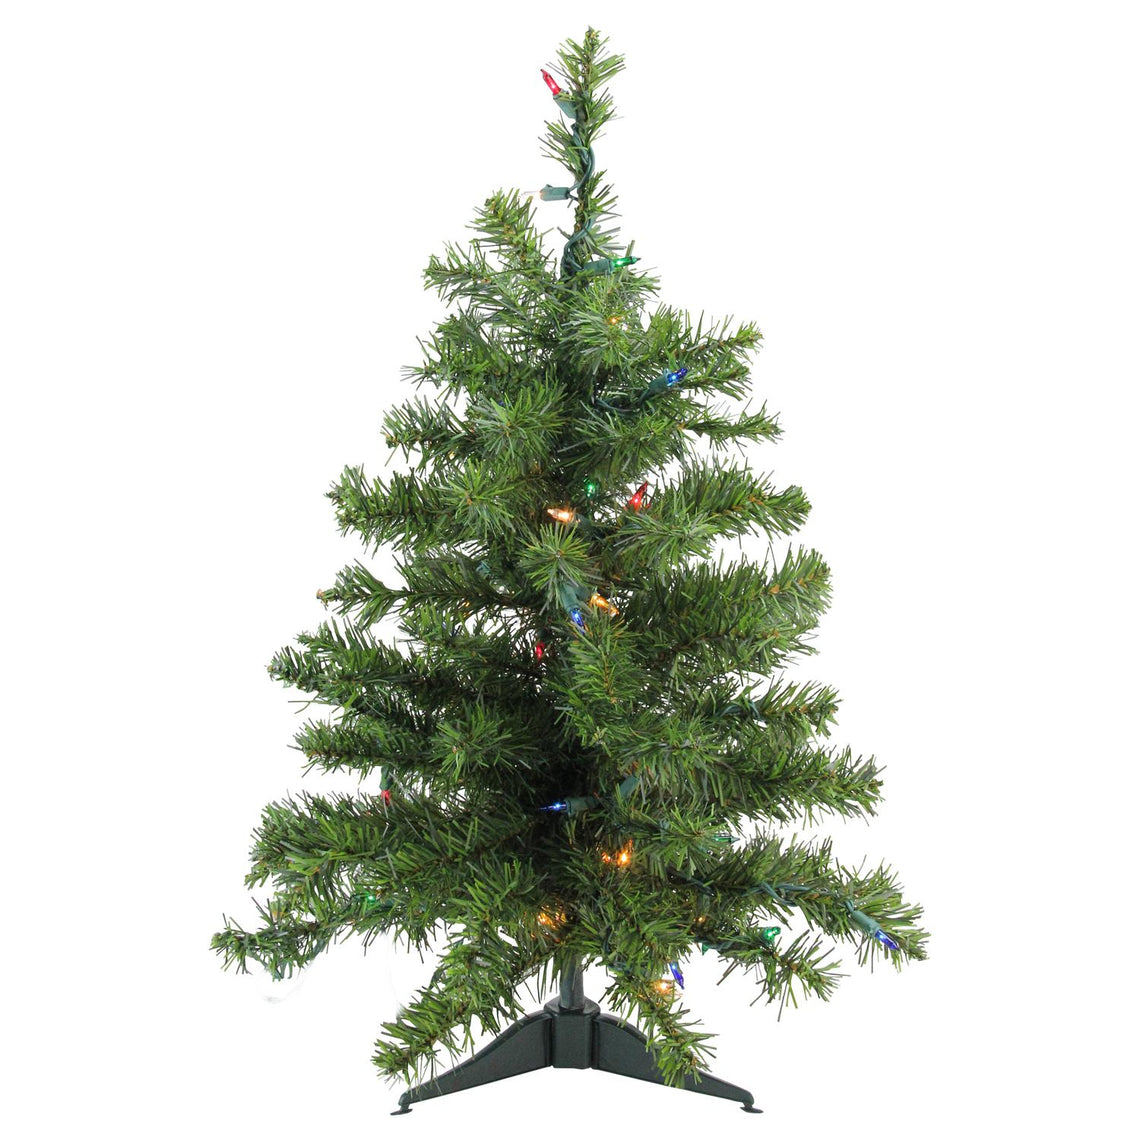 2' Pre-Lit Natural Two-Tone Pine Artificial Christmas Tree - Multi-Color Lights